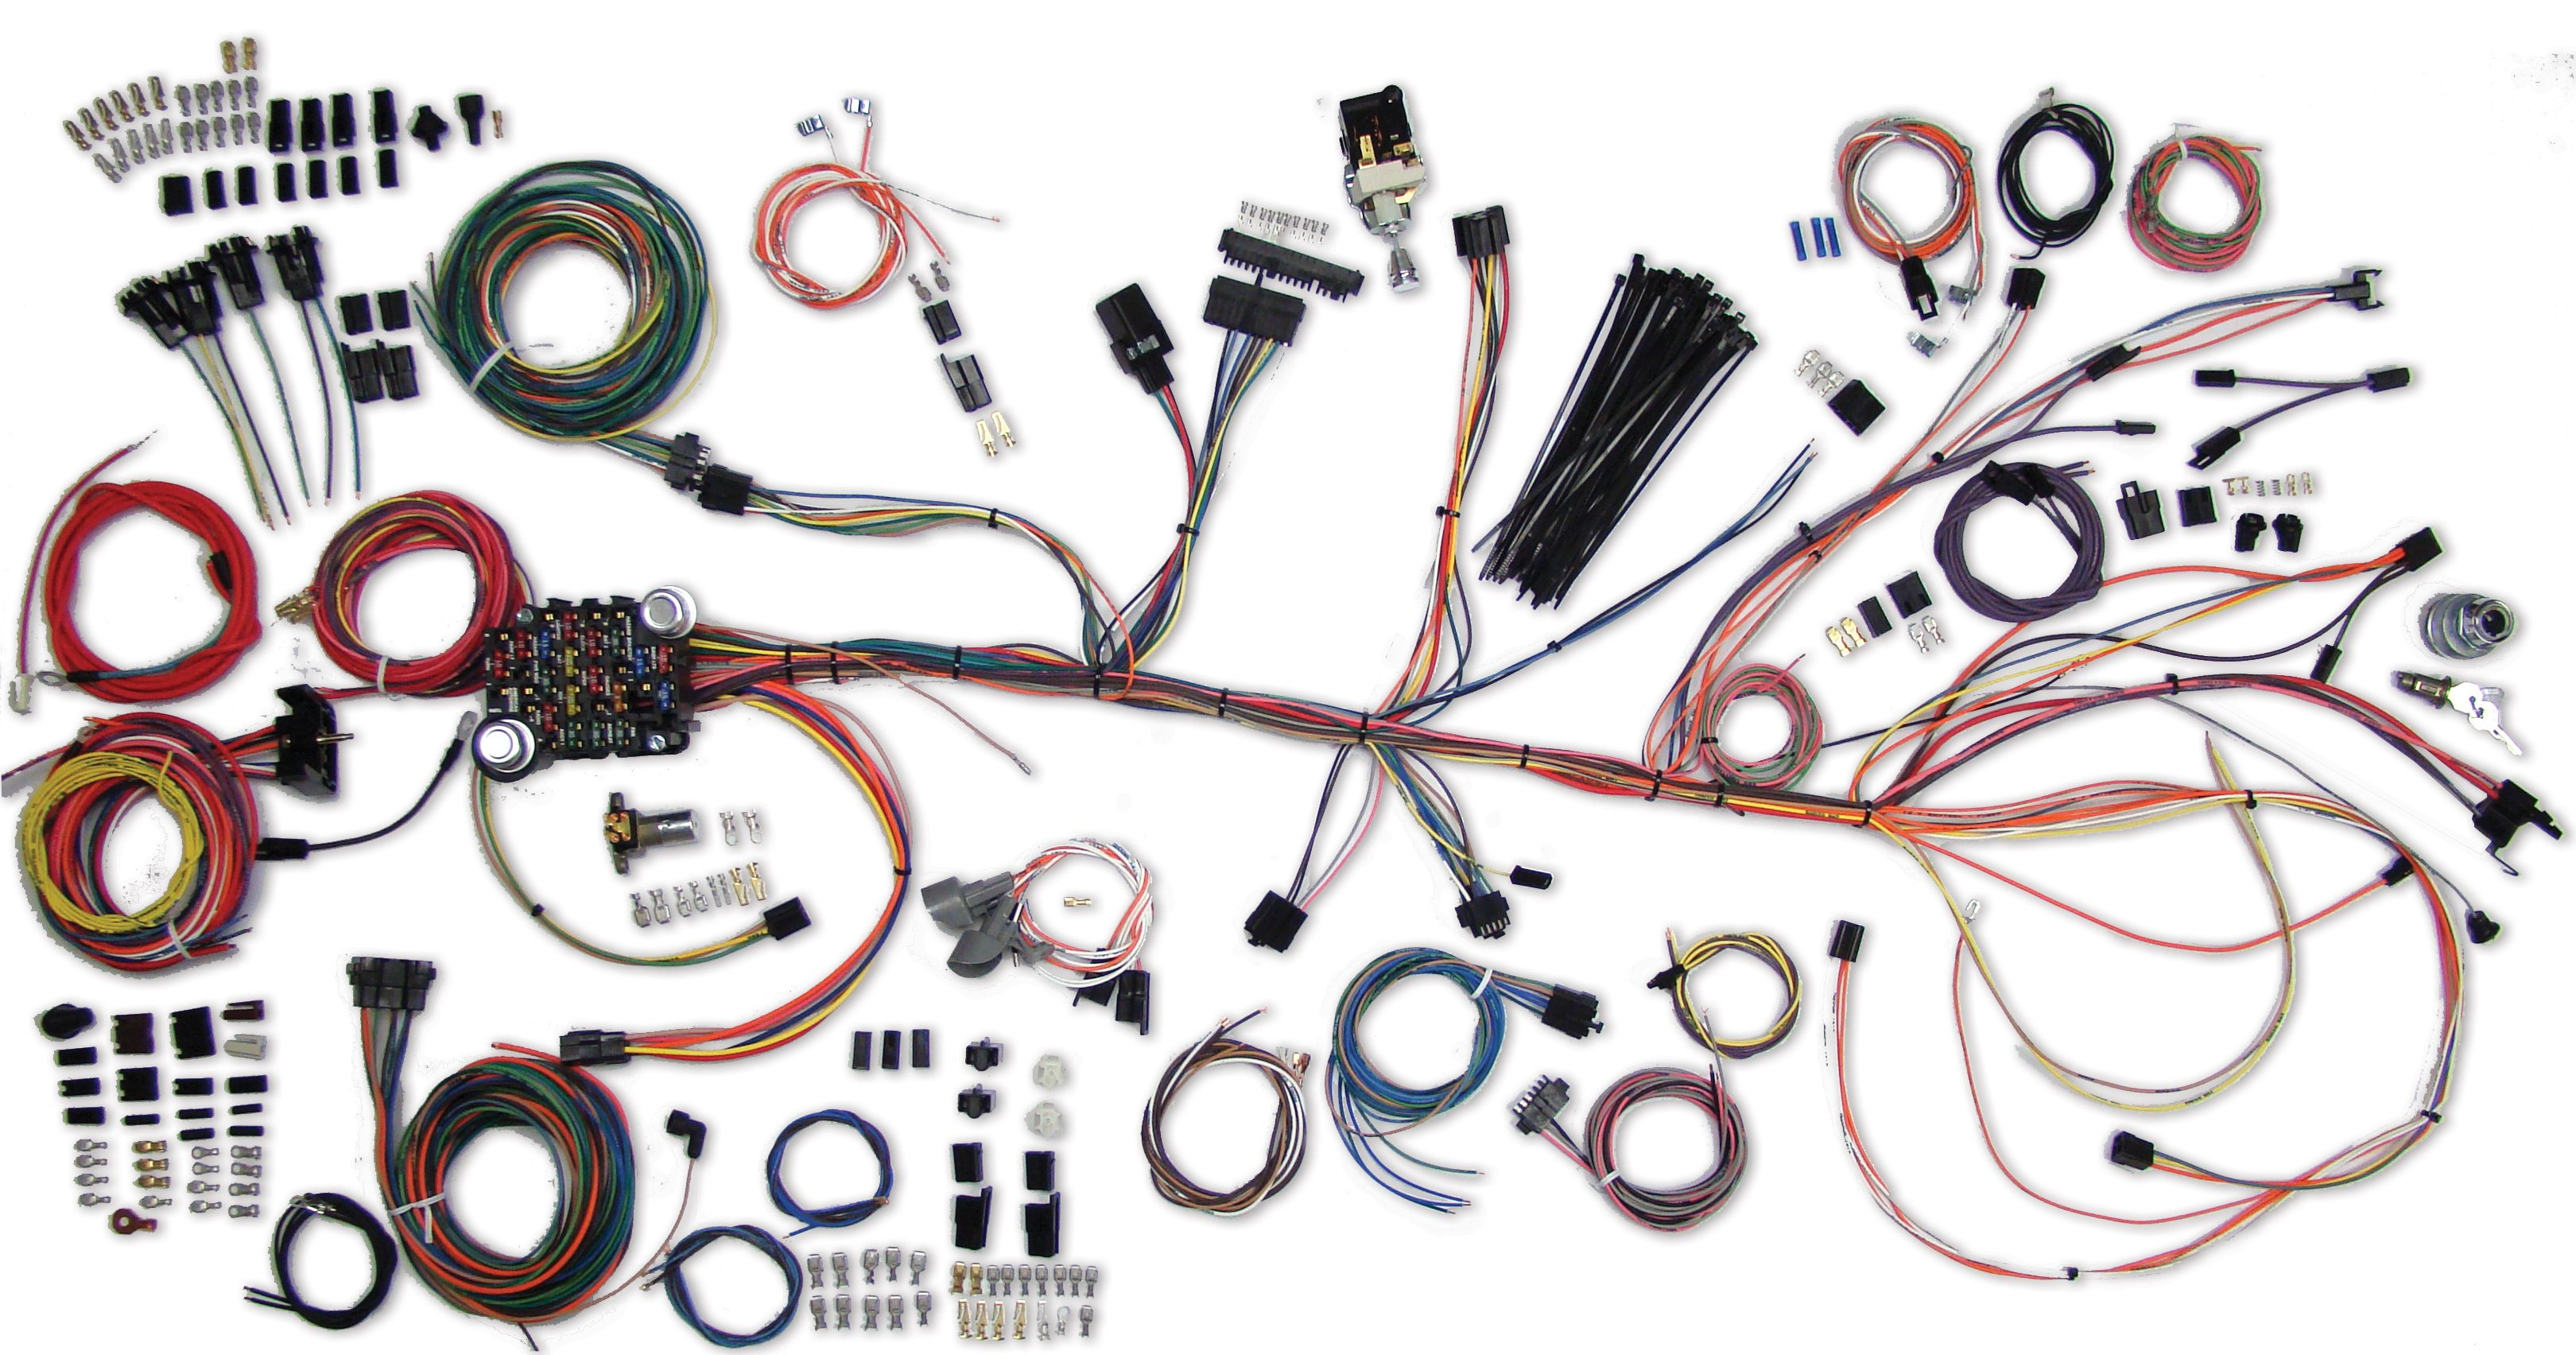 [DIAGRAM_5LK]  Classic Update Kit- 1964-67 Chevy Chevelle | American Autowire | 1966 Chevelle Dash Wiring Harness Diagram For |  | American Autowire